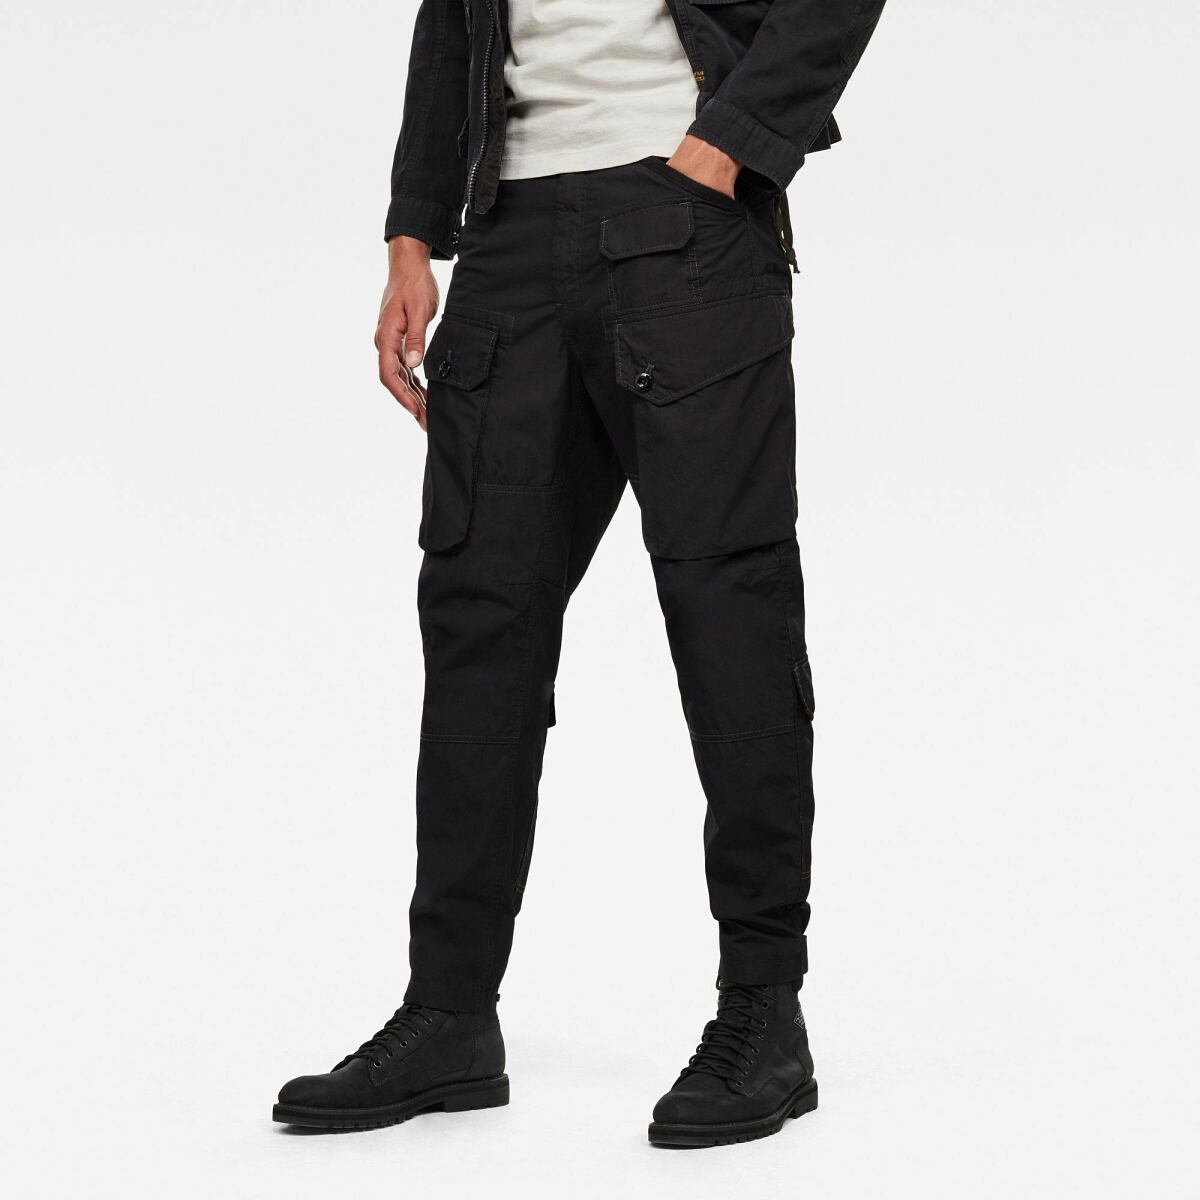 Black Man Pants Jungle Relaxed Tapered Cargo Pants G-Star MEN